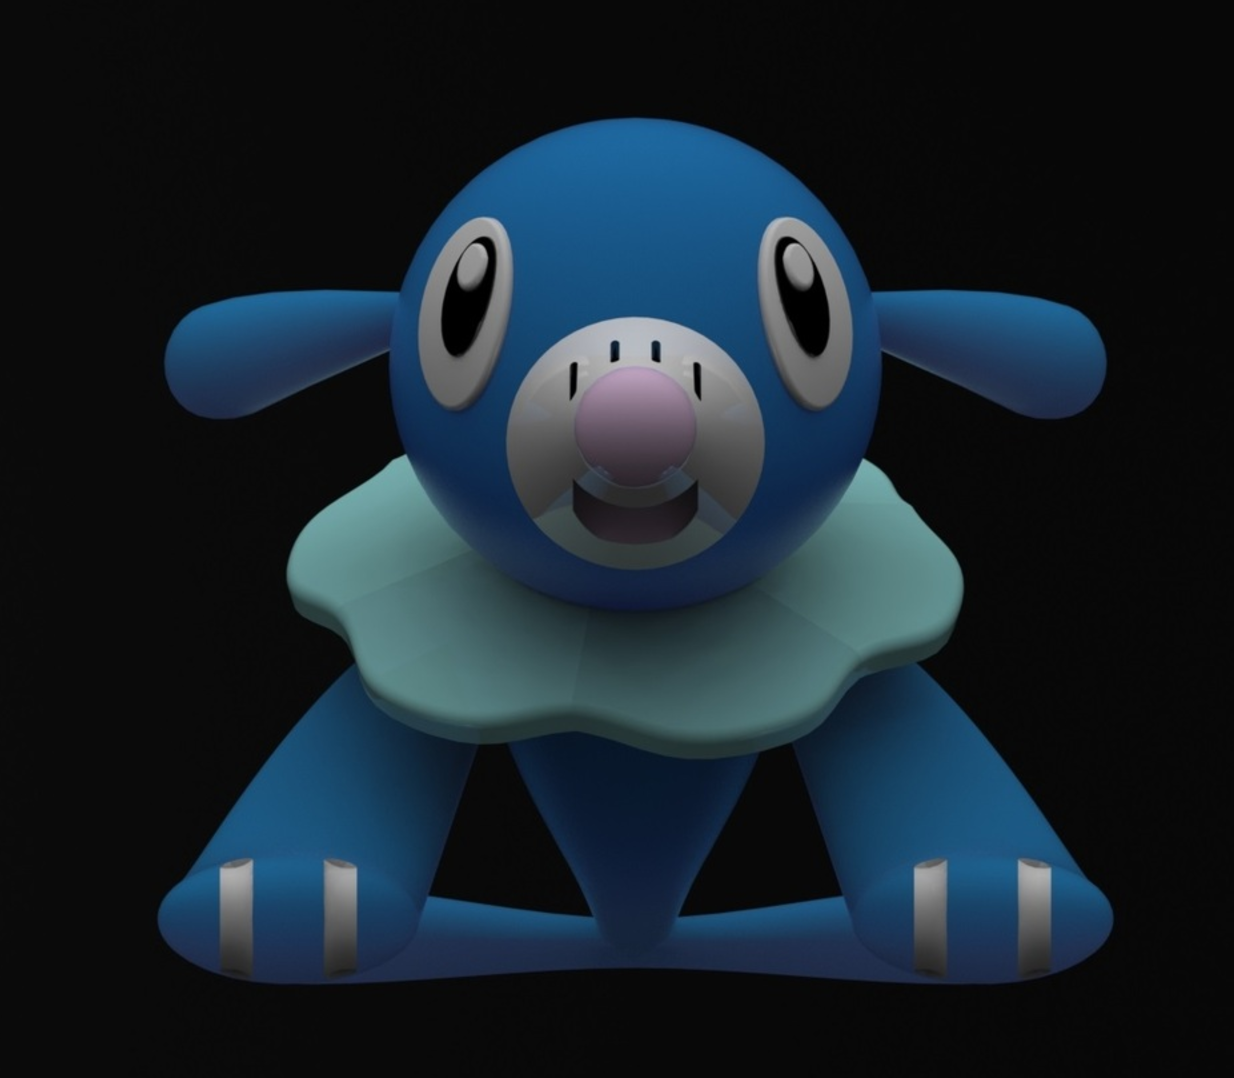 Capture d'écran 2016-12-26 à 18.04.33.png Download free STL file Popplio • Object to 3D print, Philin_theBlank